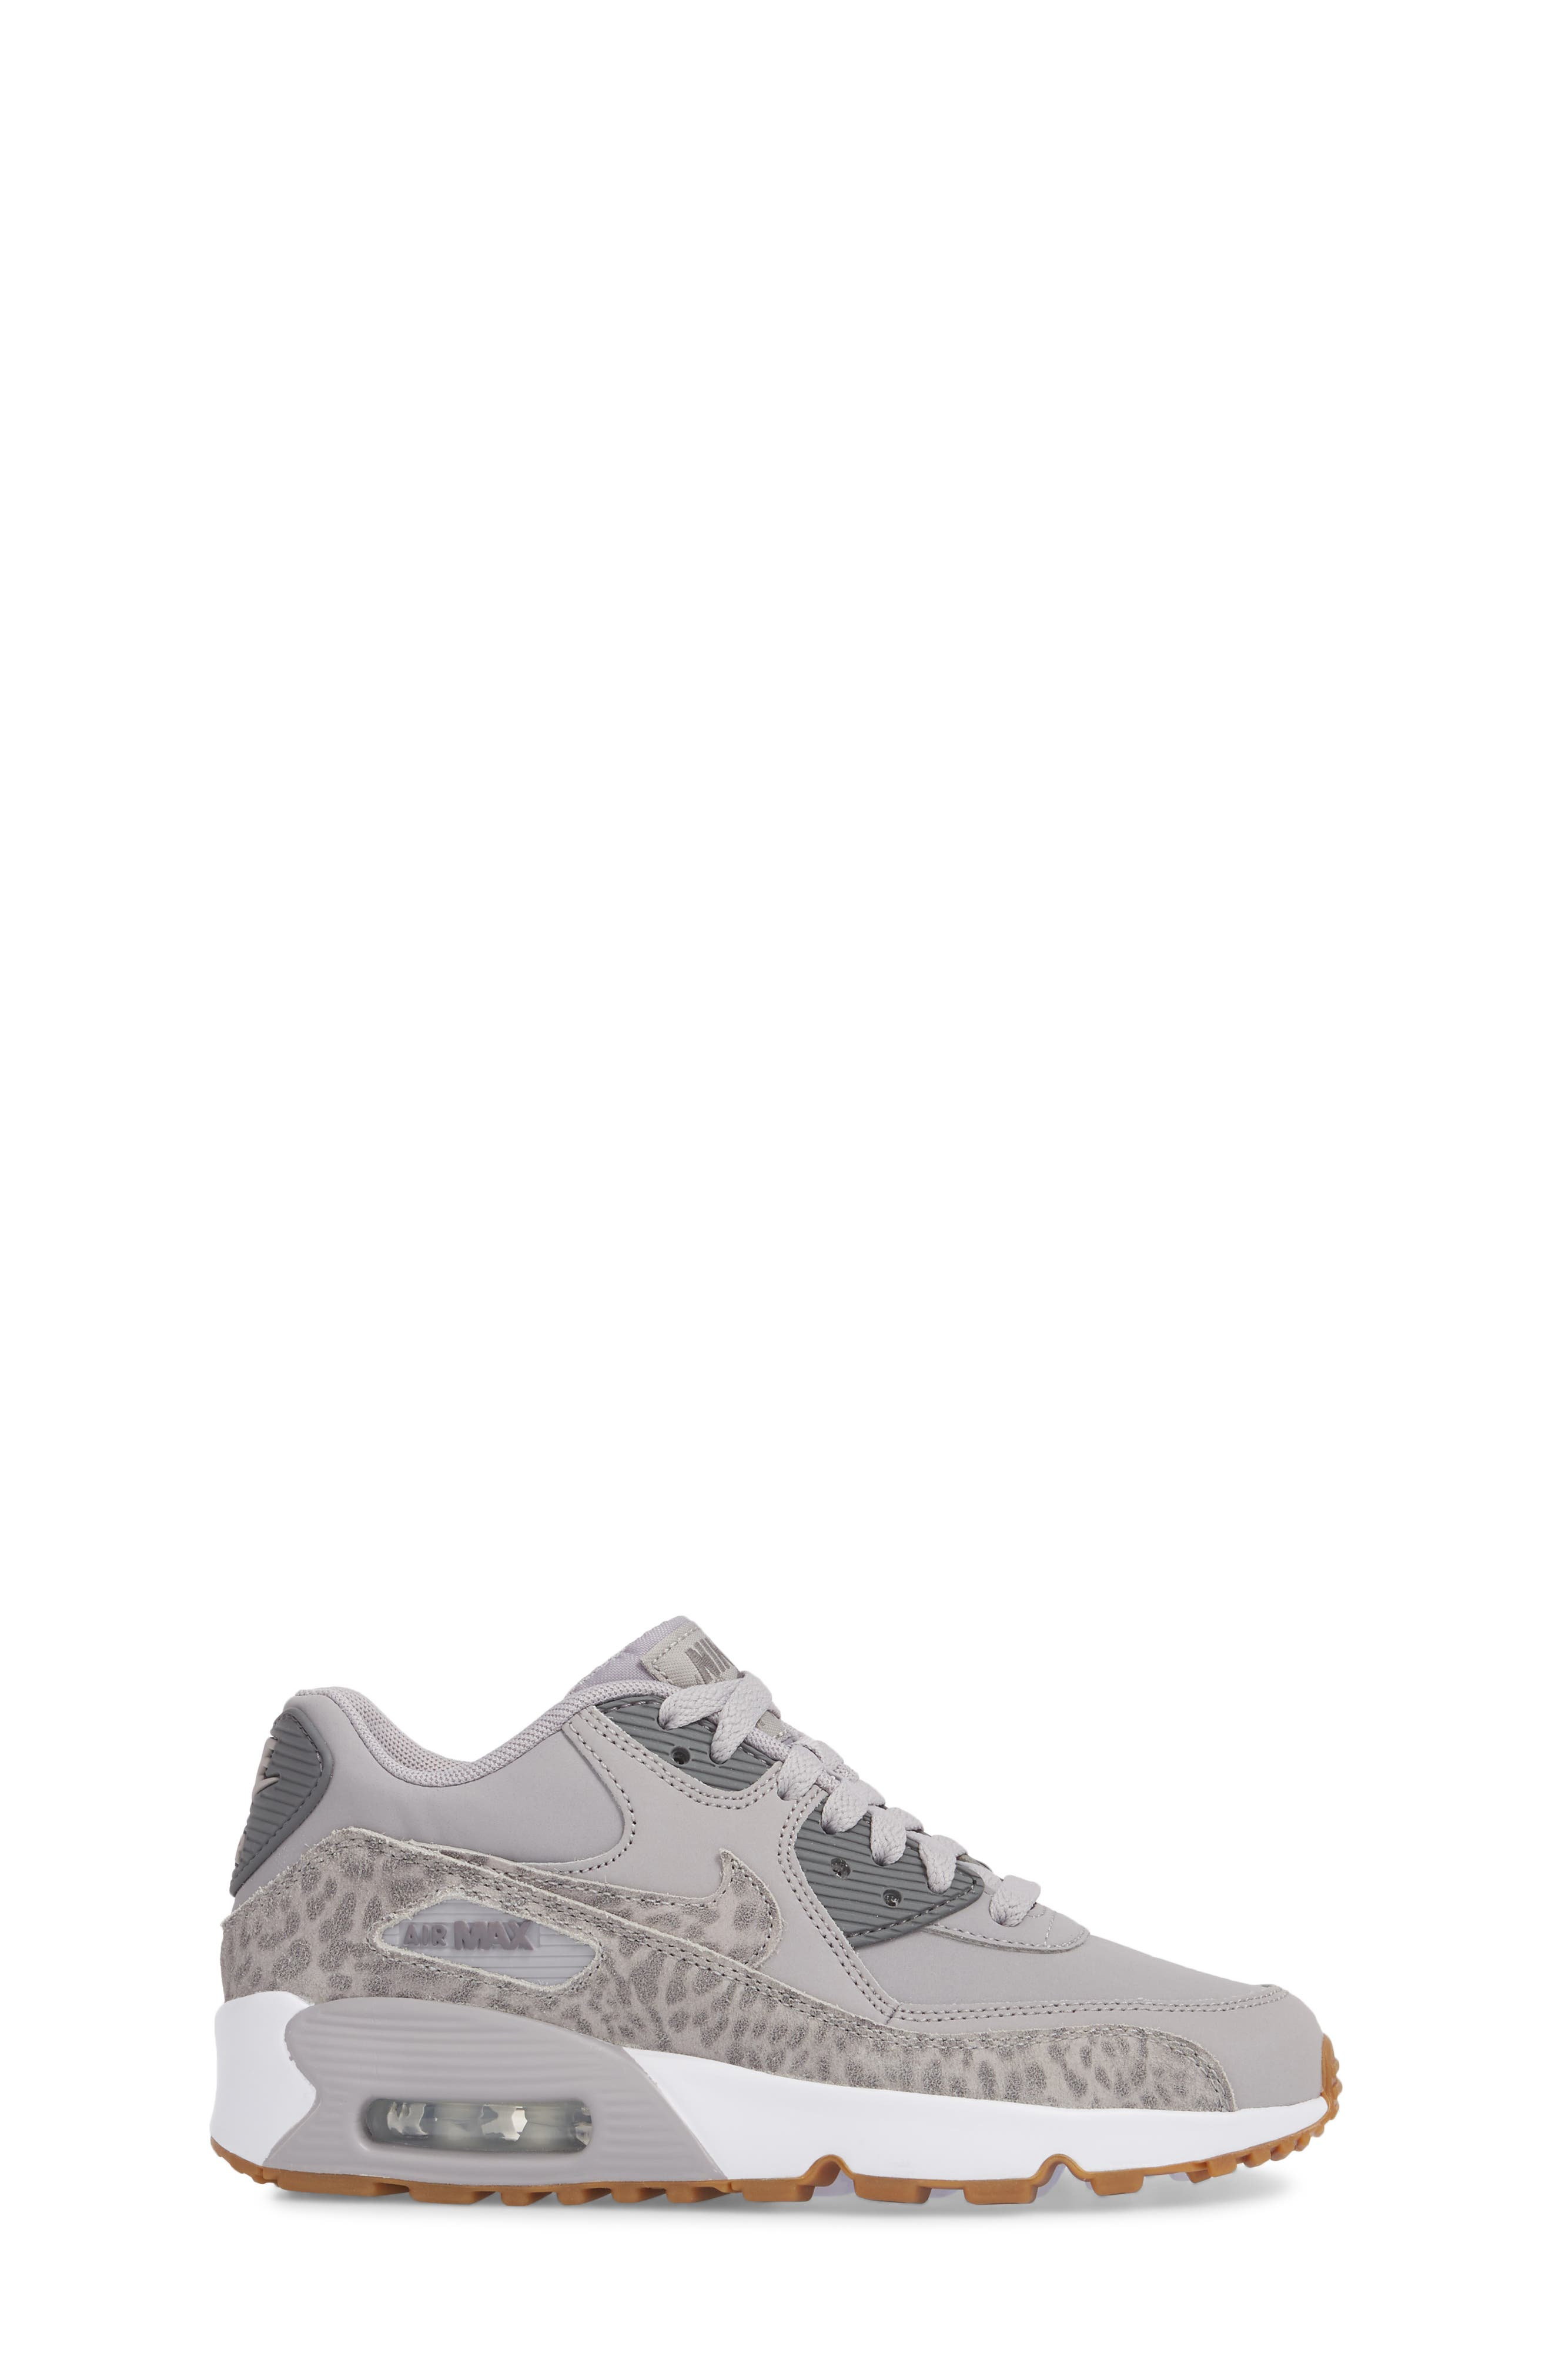 Air Max 90 Leather Sneaker,                             Alternate thumbnail 3, color,                             020